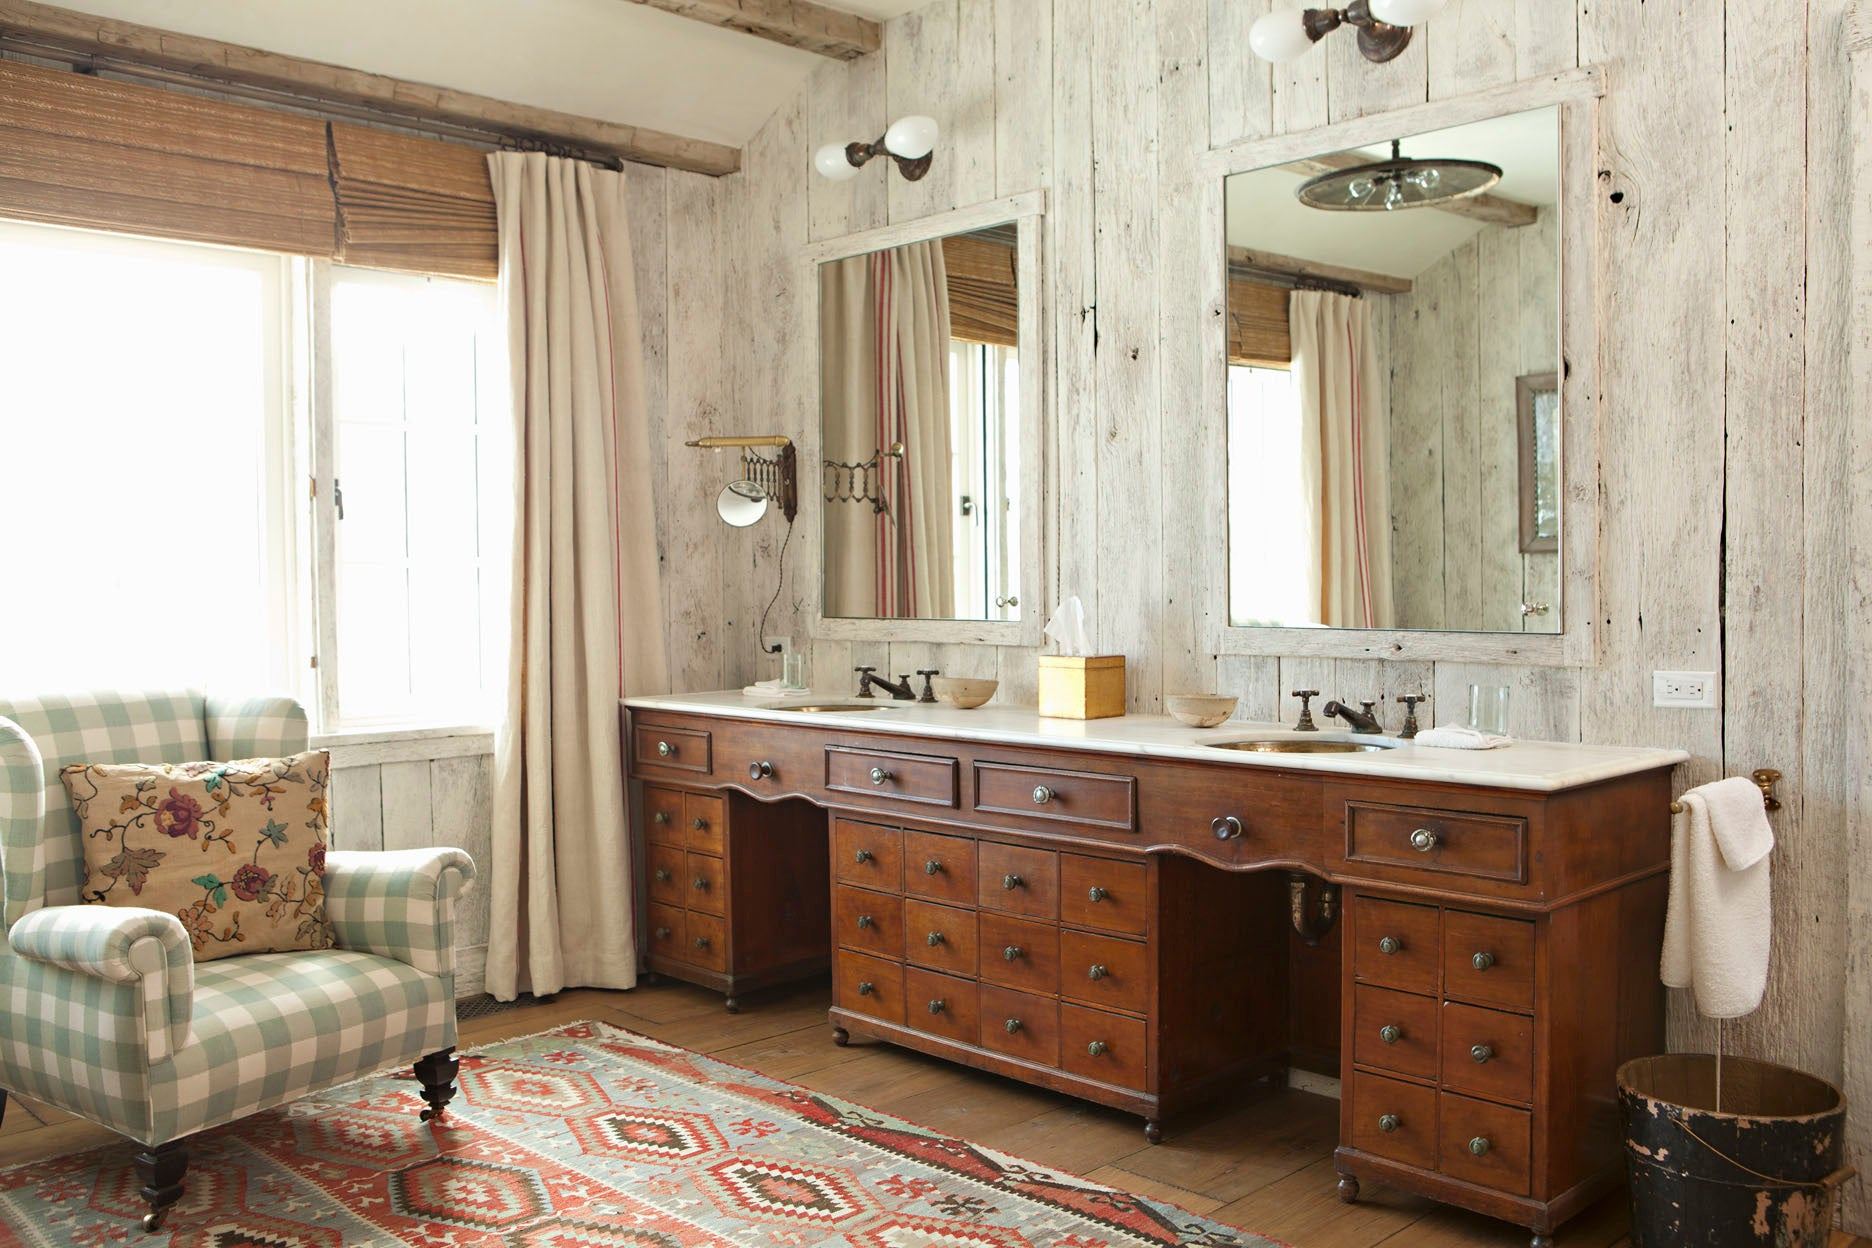 Bathroom By Peter Dunham Design On 1stdibs